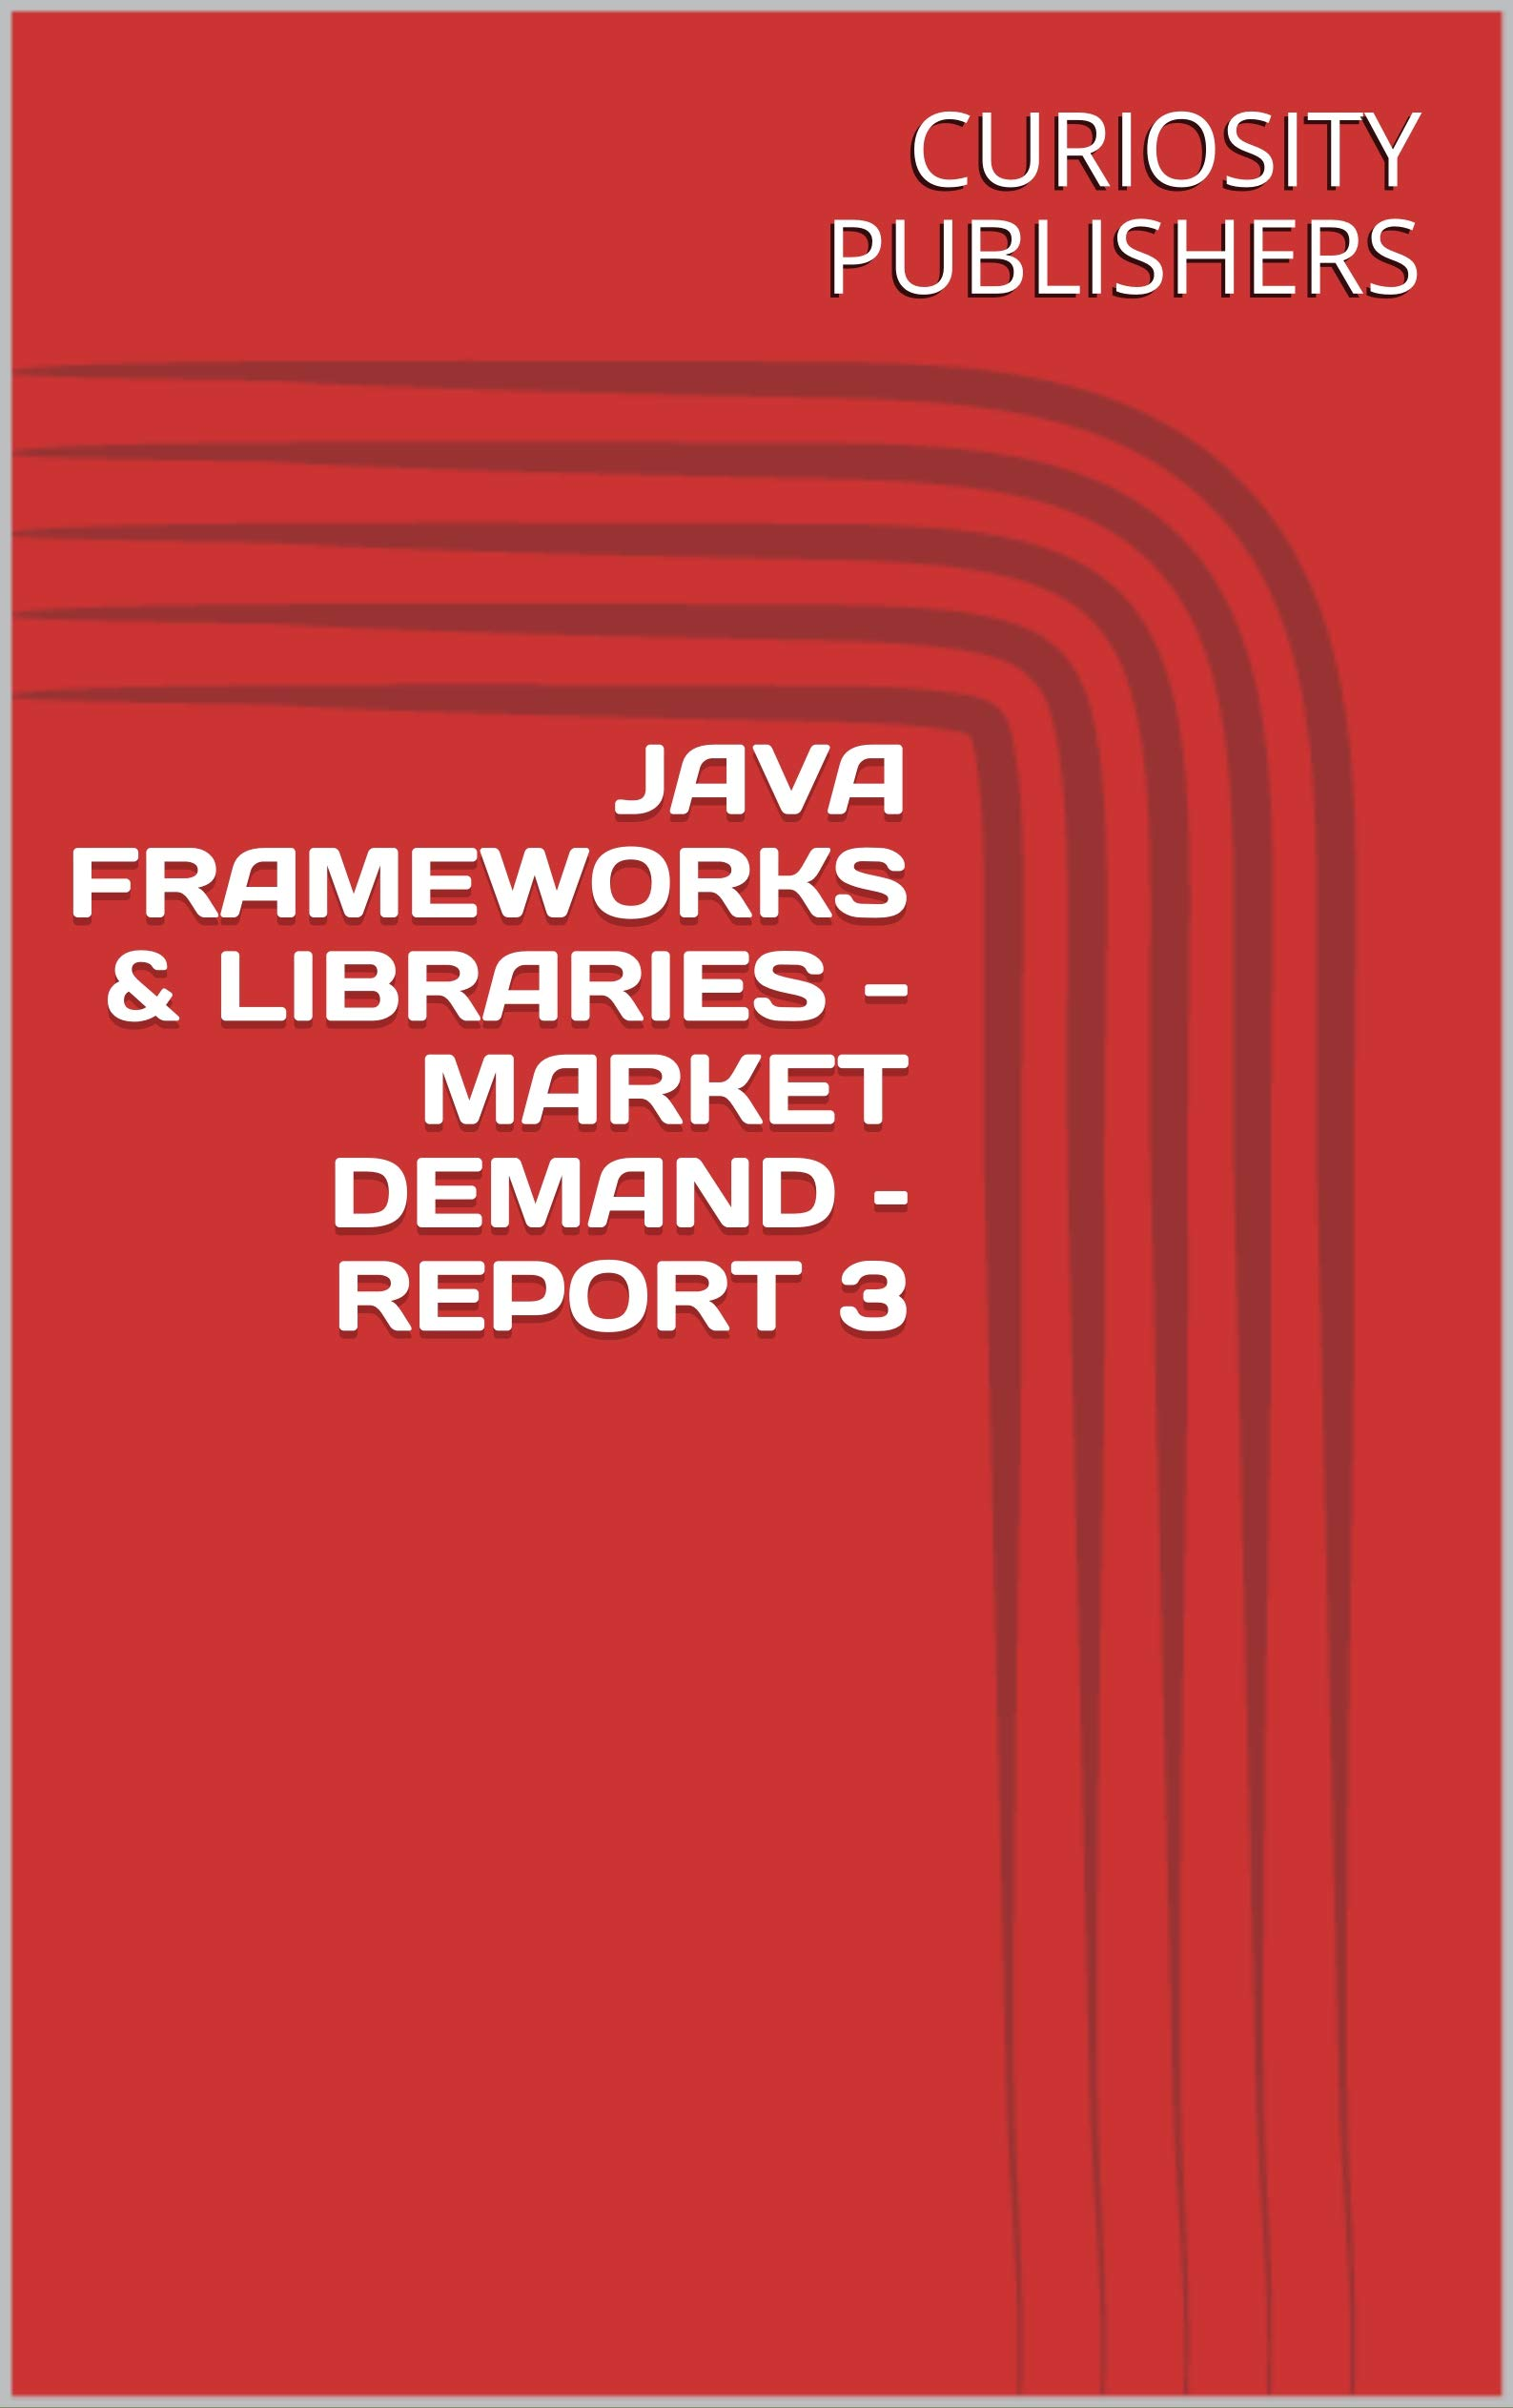 JAVA FRAMEWORKS & LIBRARIES - MARKET DEMAND – REPORT 3